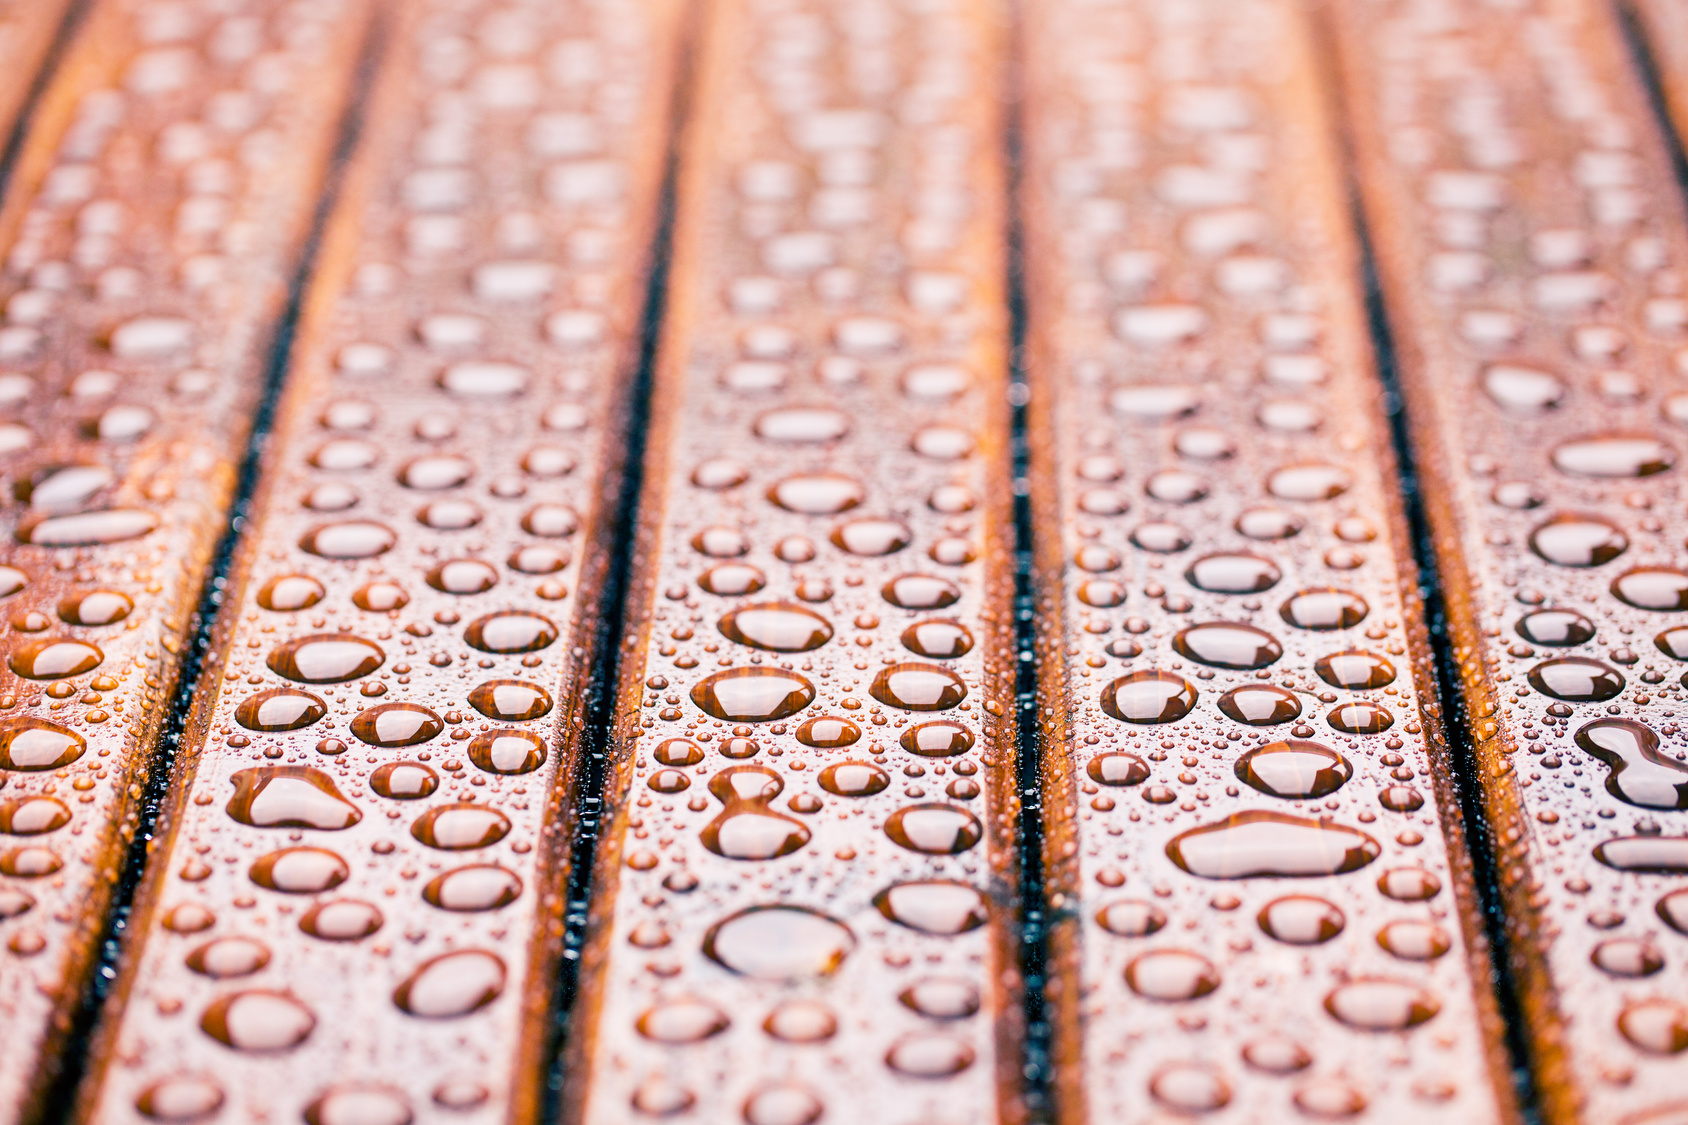 Moisture in flooring can be disastrous, be sure to check your flooring thoroughly.